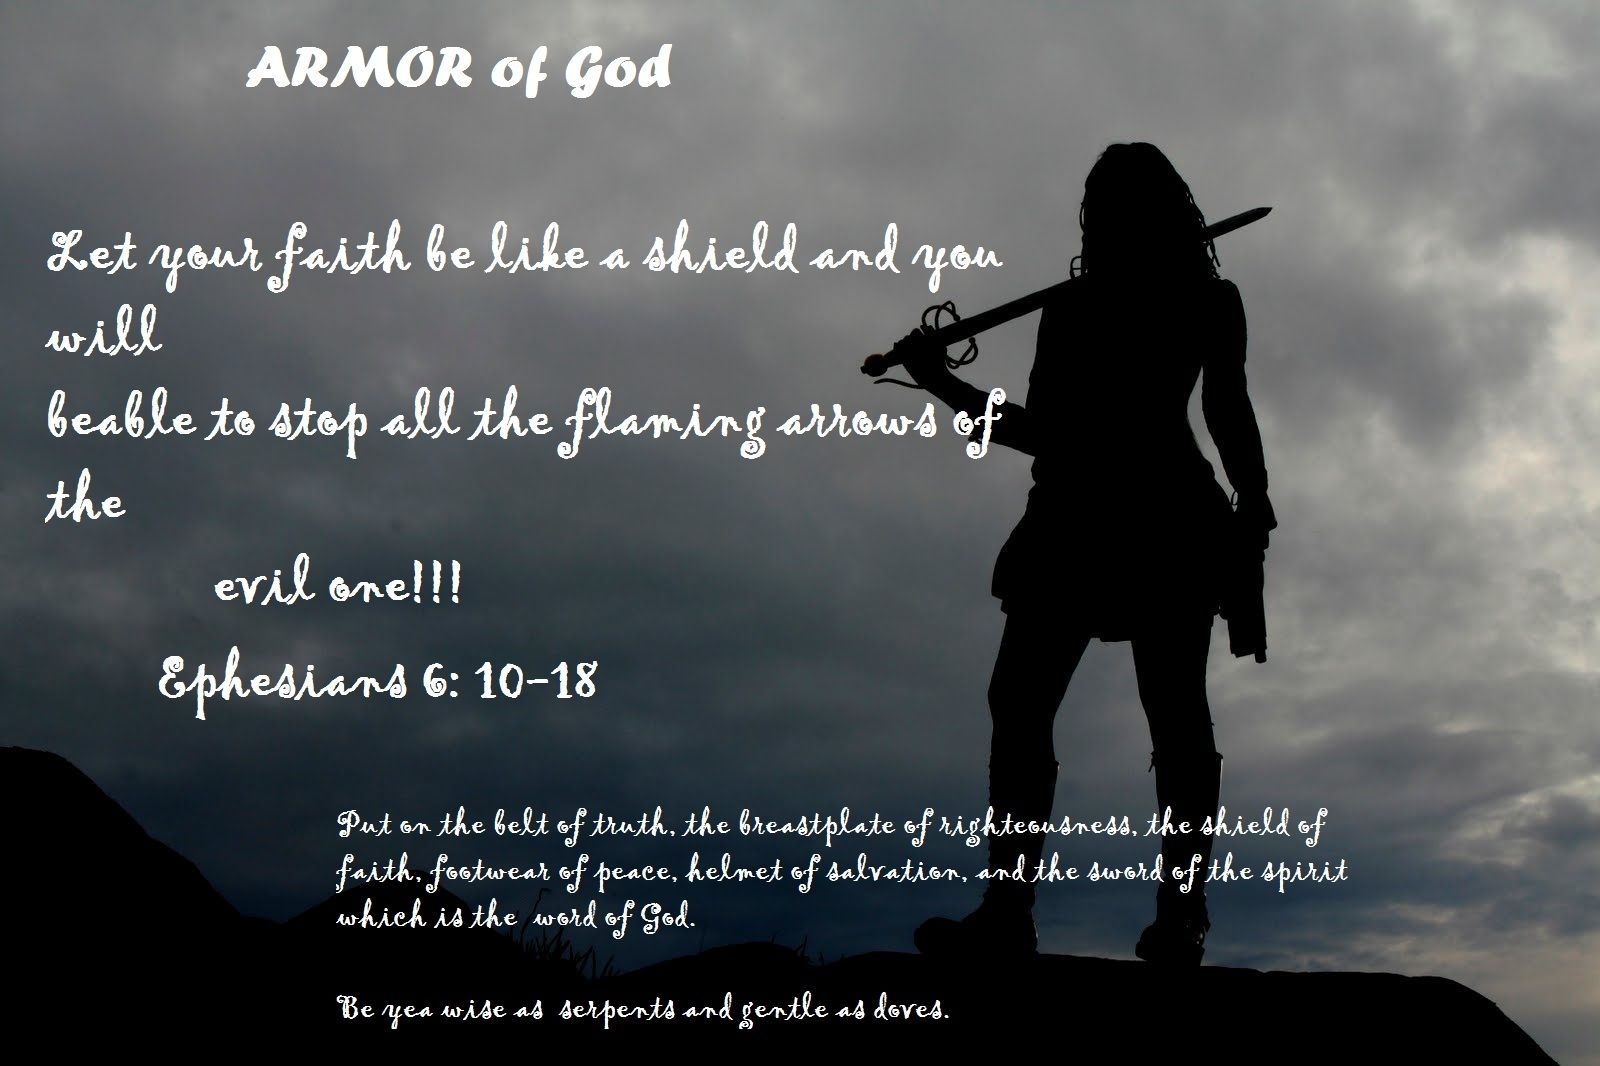 Armor of God.  I made this for a wall hanging in my kitchen to remind me of the battle we must prepare for everyday